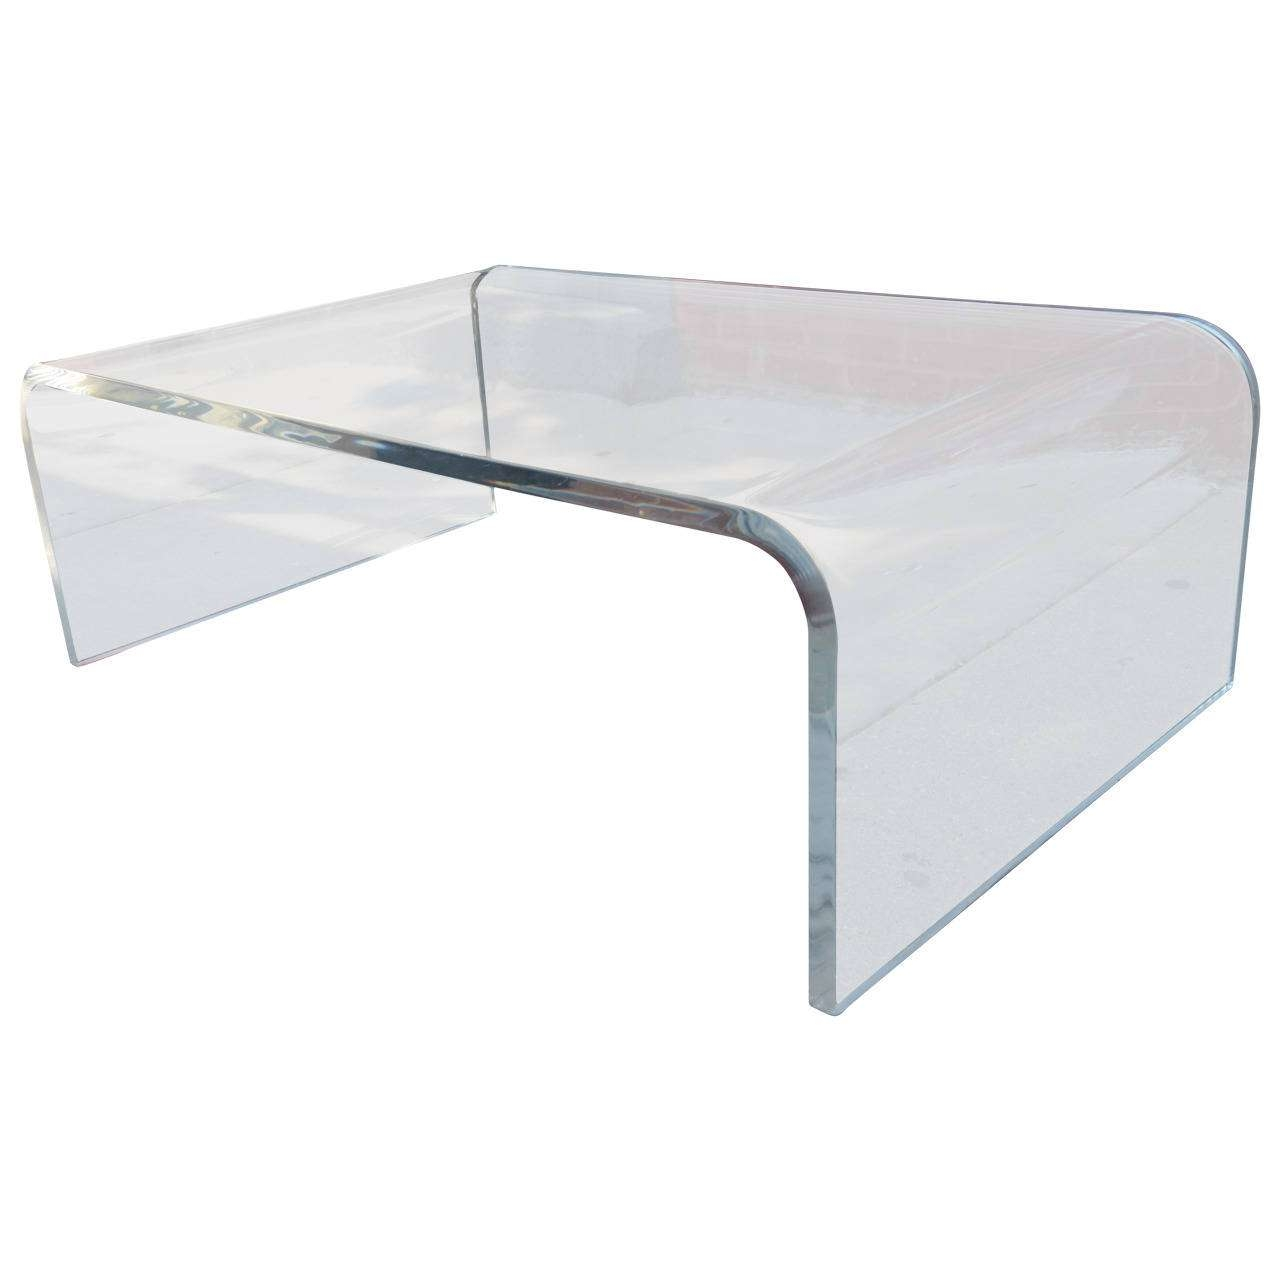 Newest Perspex Coffee Table For Coffee Tables : Furniture Square Clear Adair Acrylic Coffee Table (View 13 of 20)